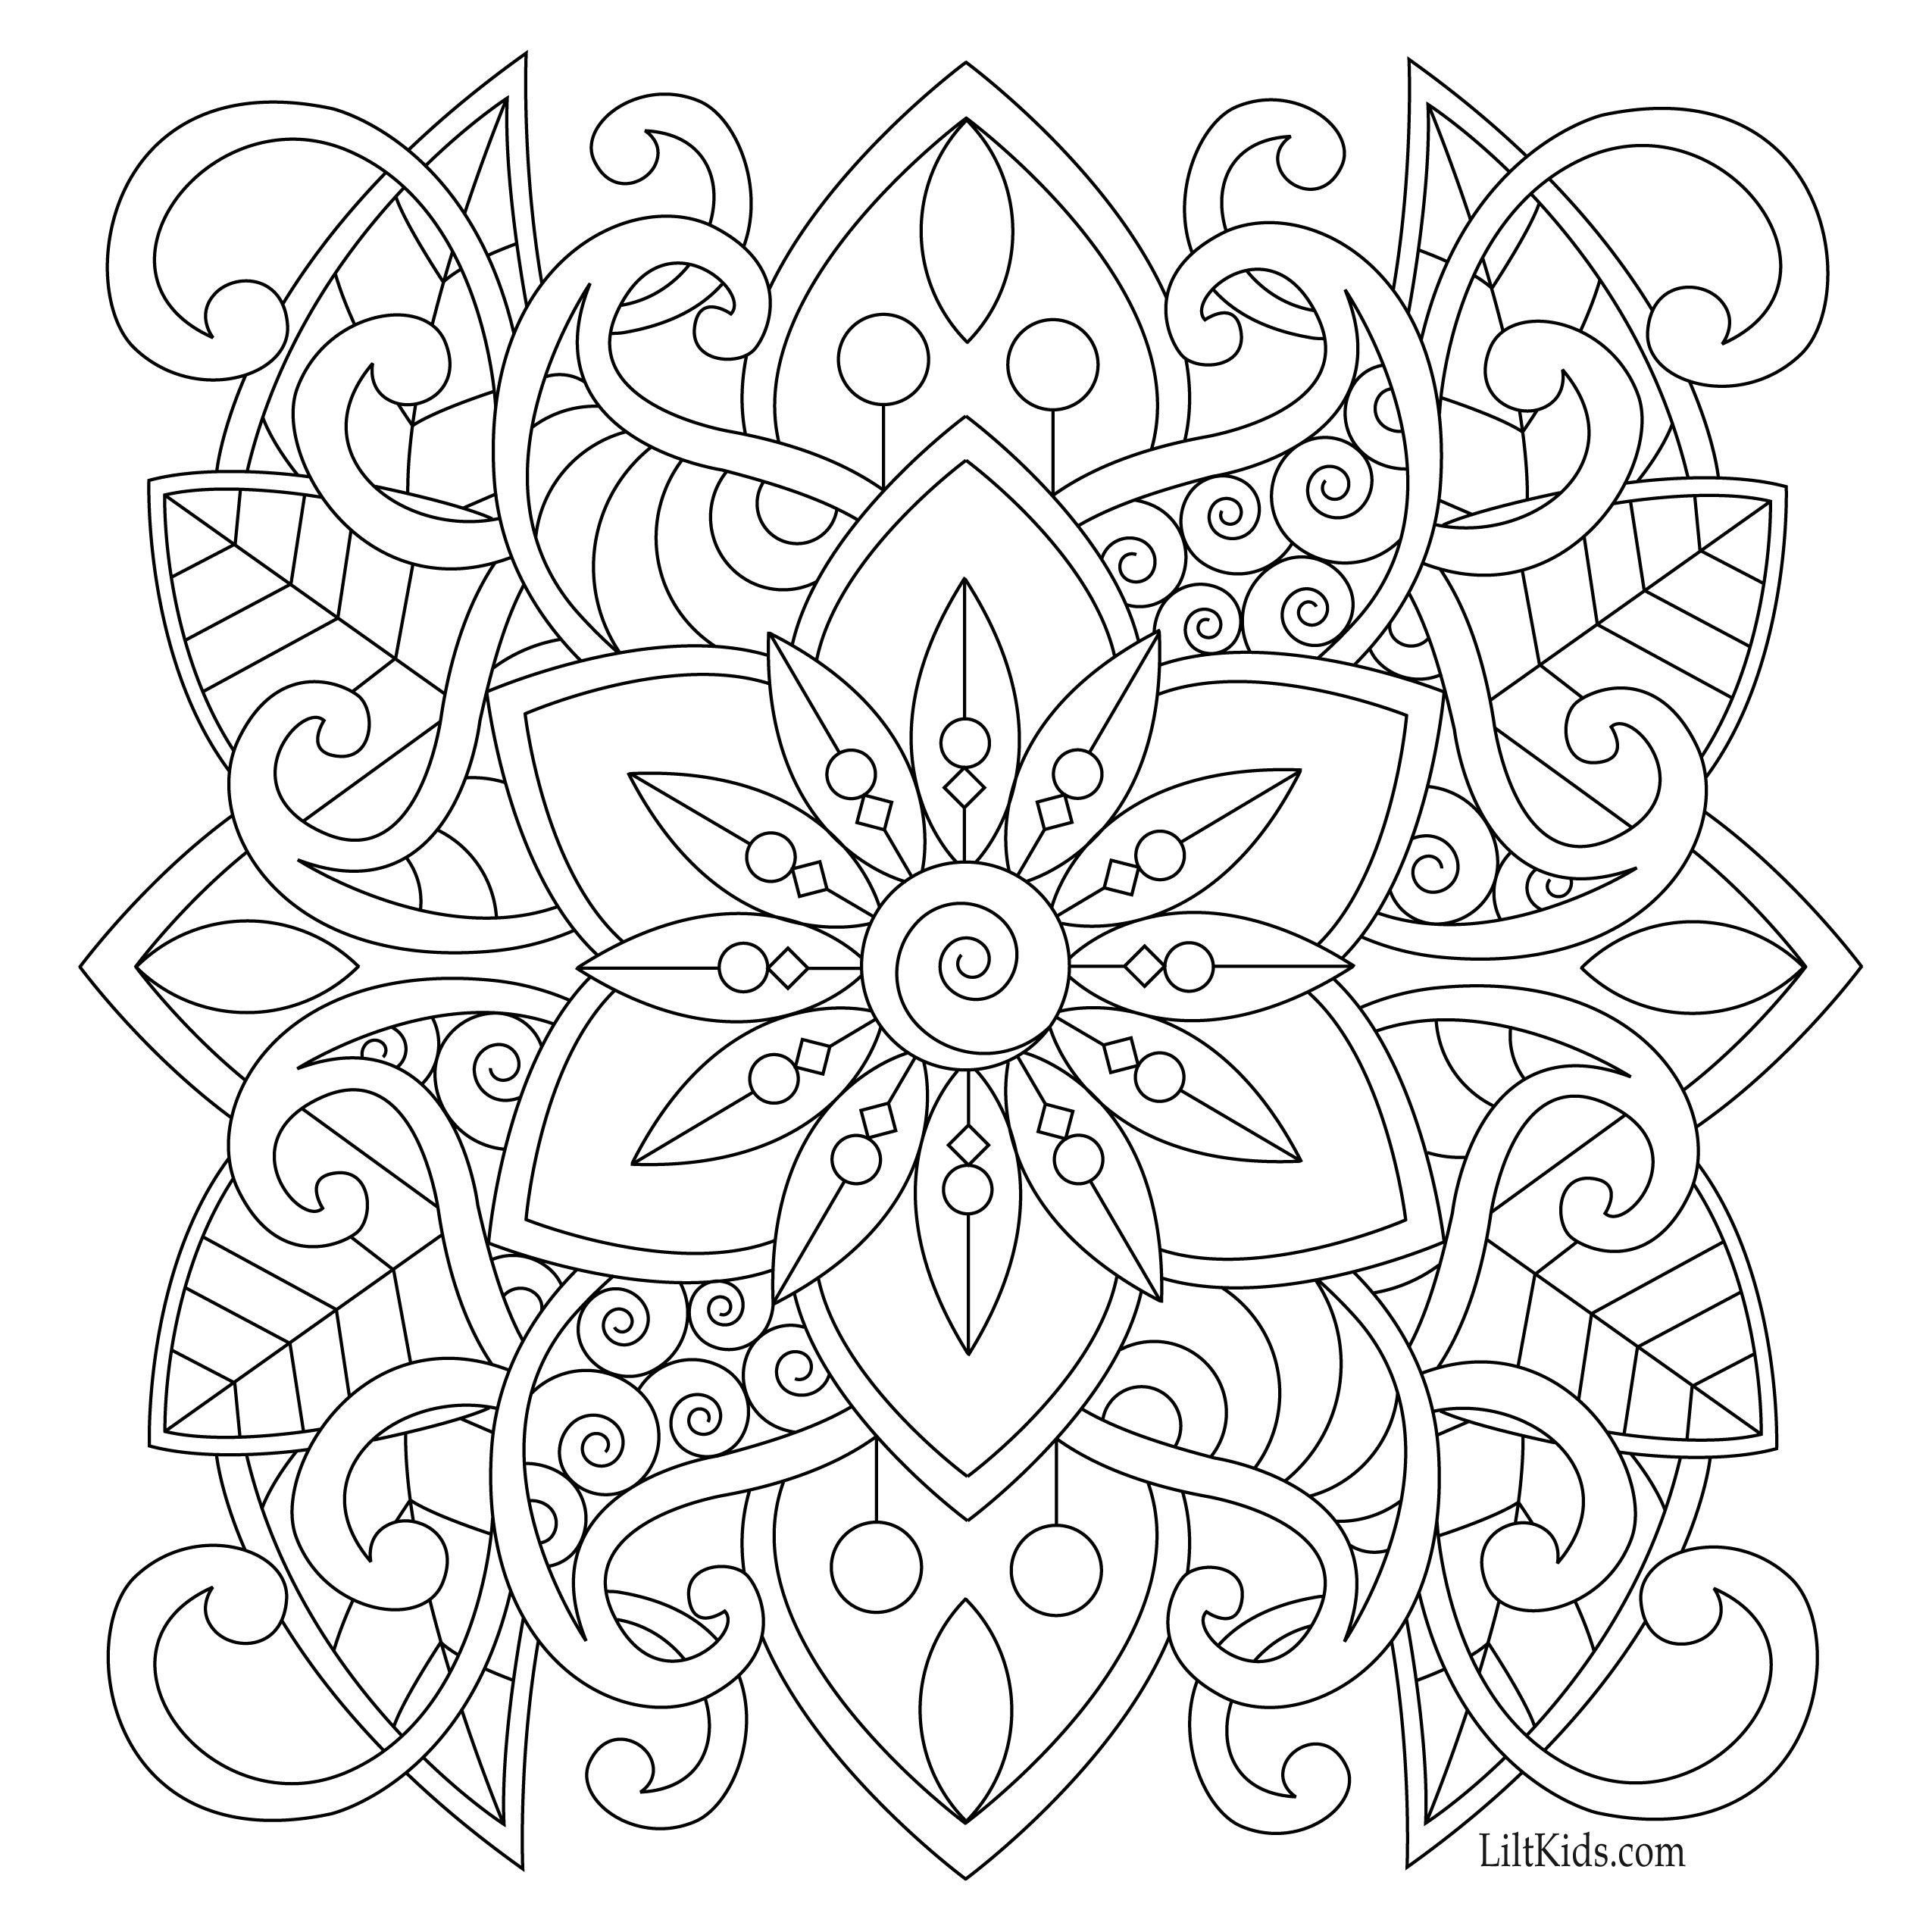 400 Best Coloring Pages 23 Best Simple Adult Coloring Books Best Coloring Pages Inspiration And Ideas In 2020 Mandala Coloring Pages Easy Coloring Pages Mandala Coloring Books